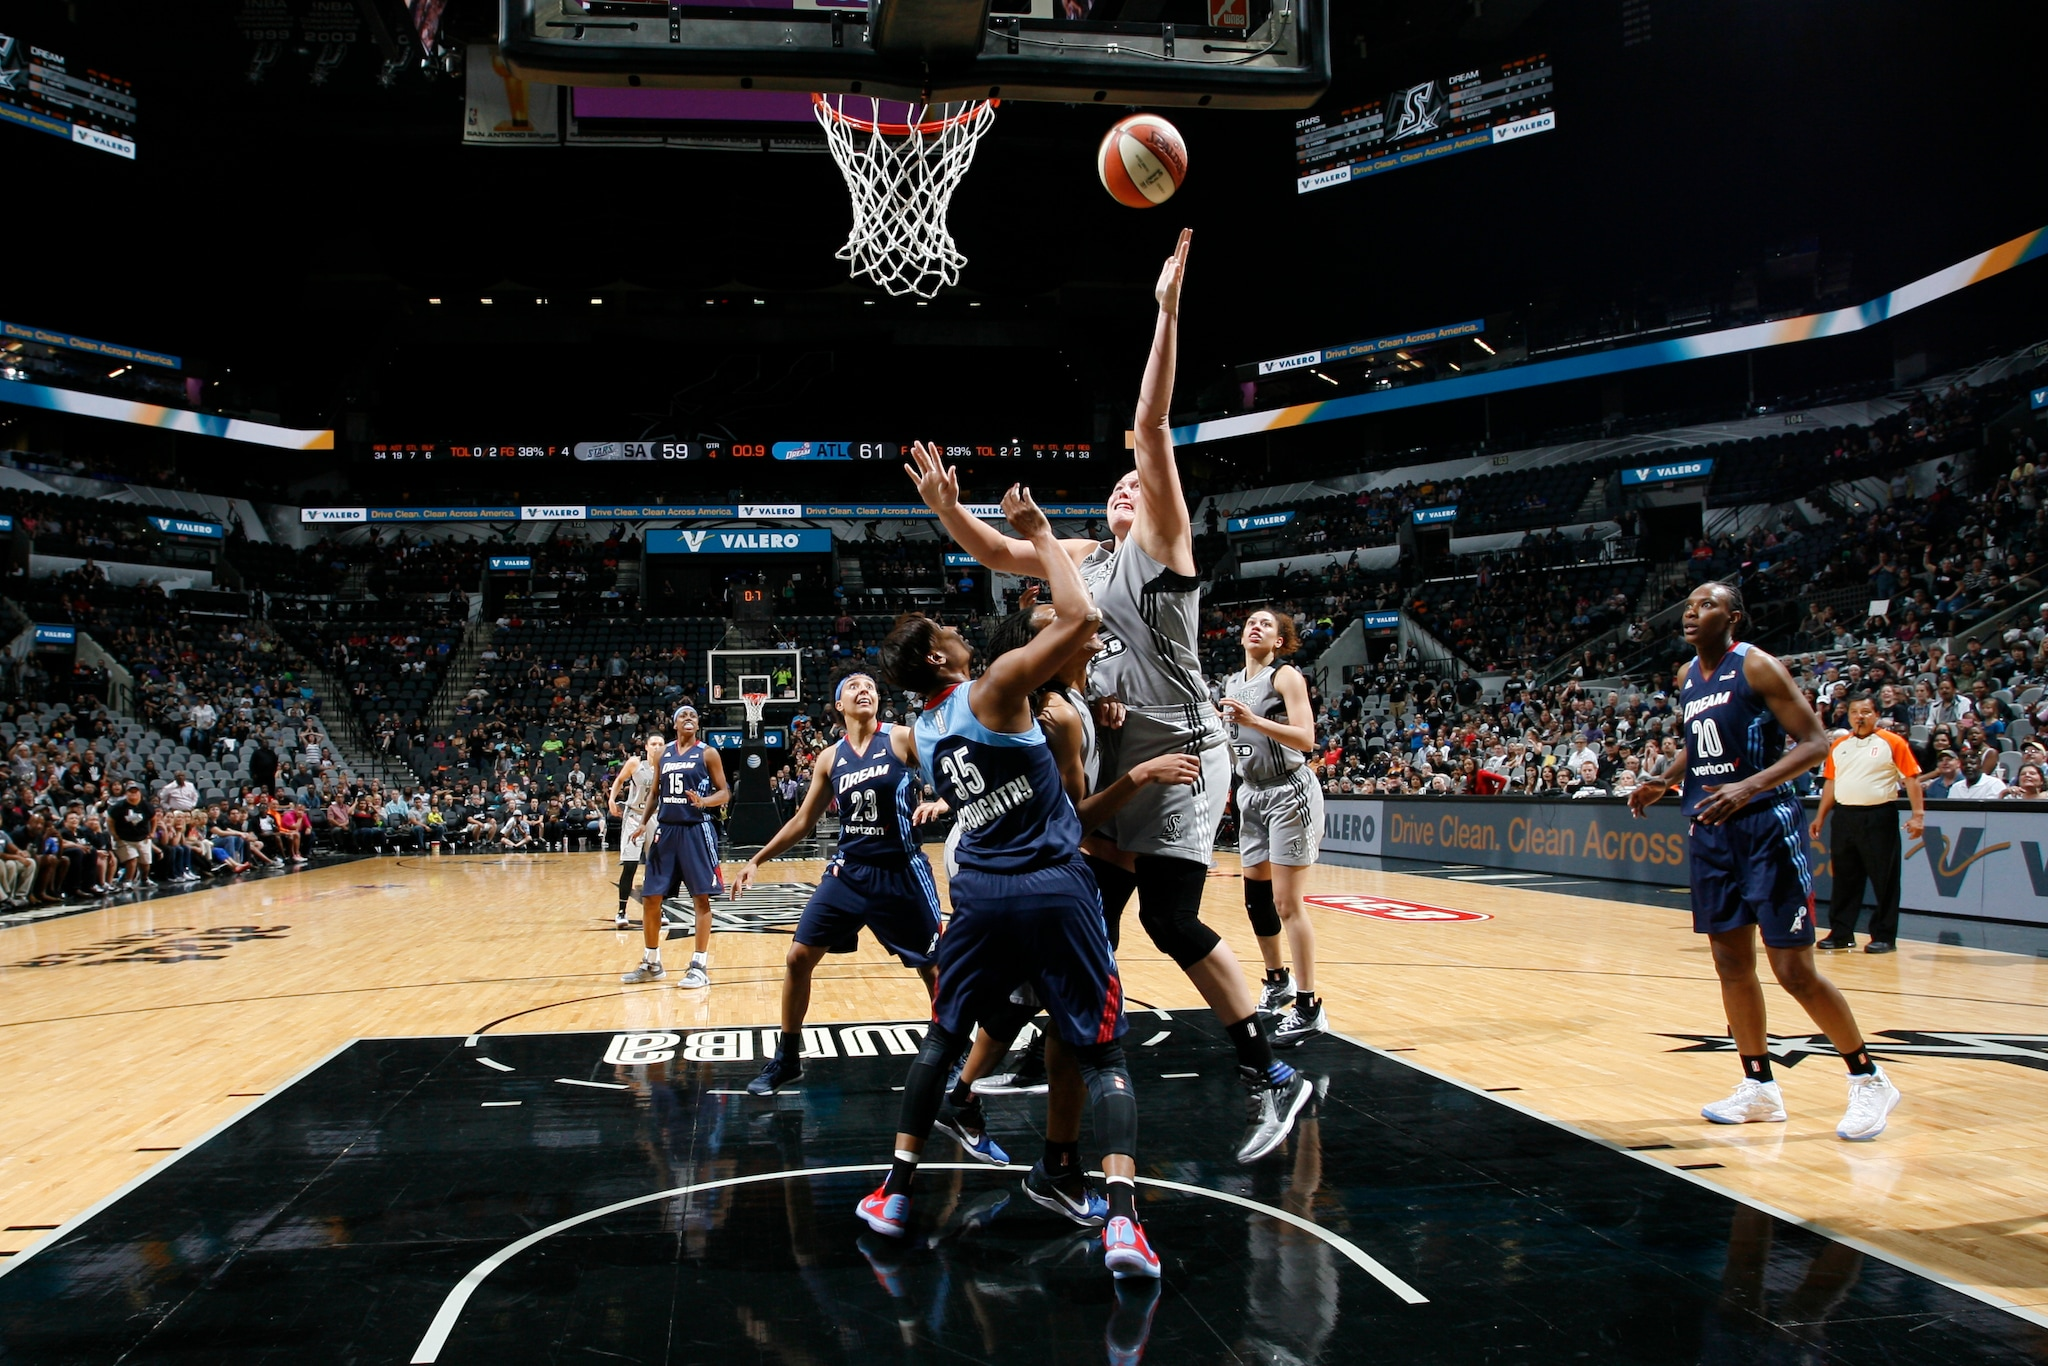 SAN ANTONIO, TX - MAY 14: Jayne Appel-Marinelli #32 of the San Antonio Stars shoots against the Atlanta Dream during the game on May 14, 2016 at AT&T Center in San Antonio, Texas. NOTE TO USER: User expressly acknowledges and agrees that, by downloading and or using this Photograph, user is consenting to the terms and conditions of the Getty Images License Agreement. Mandatory Copyright Notice: Copyright 2016 NBAE (Photo by Chris Covatta/NBAE via Getty Images)